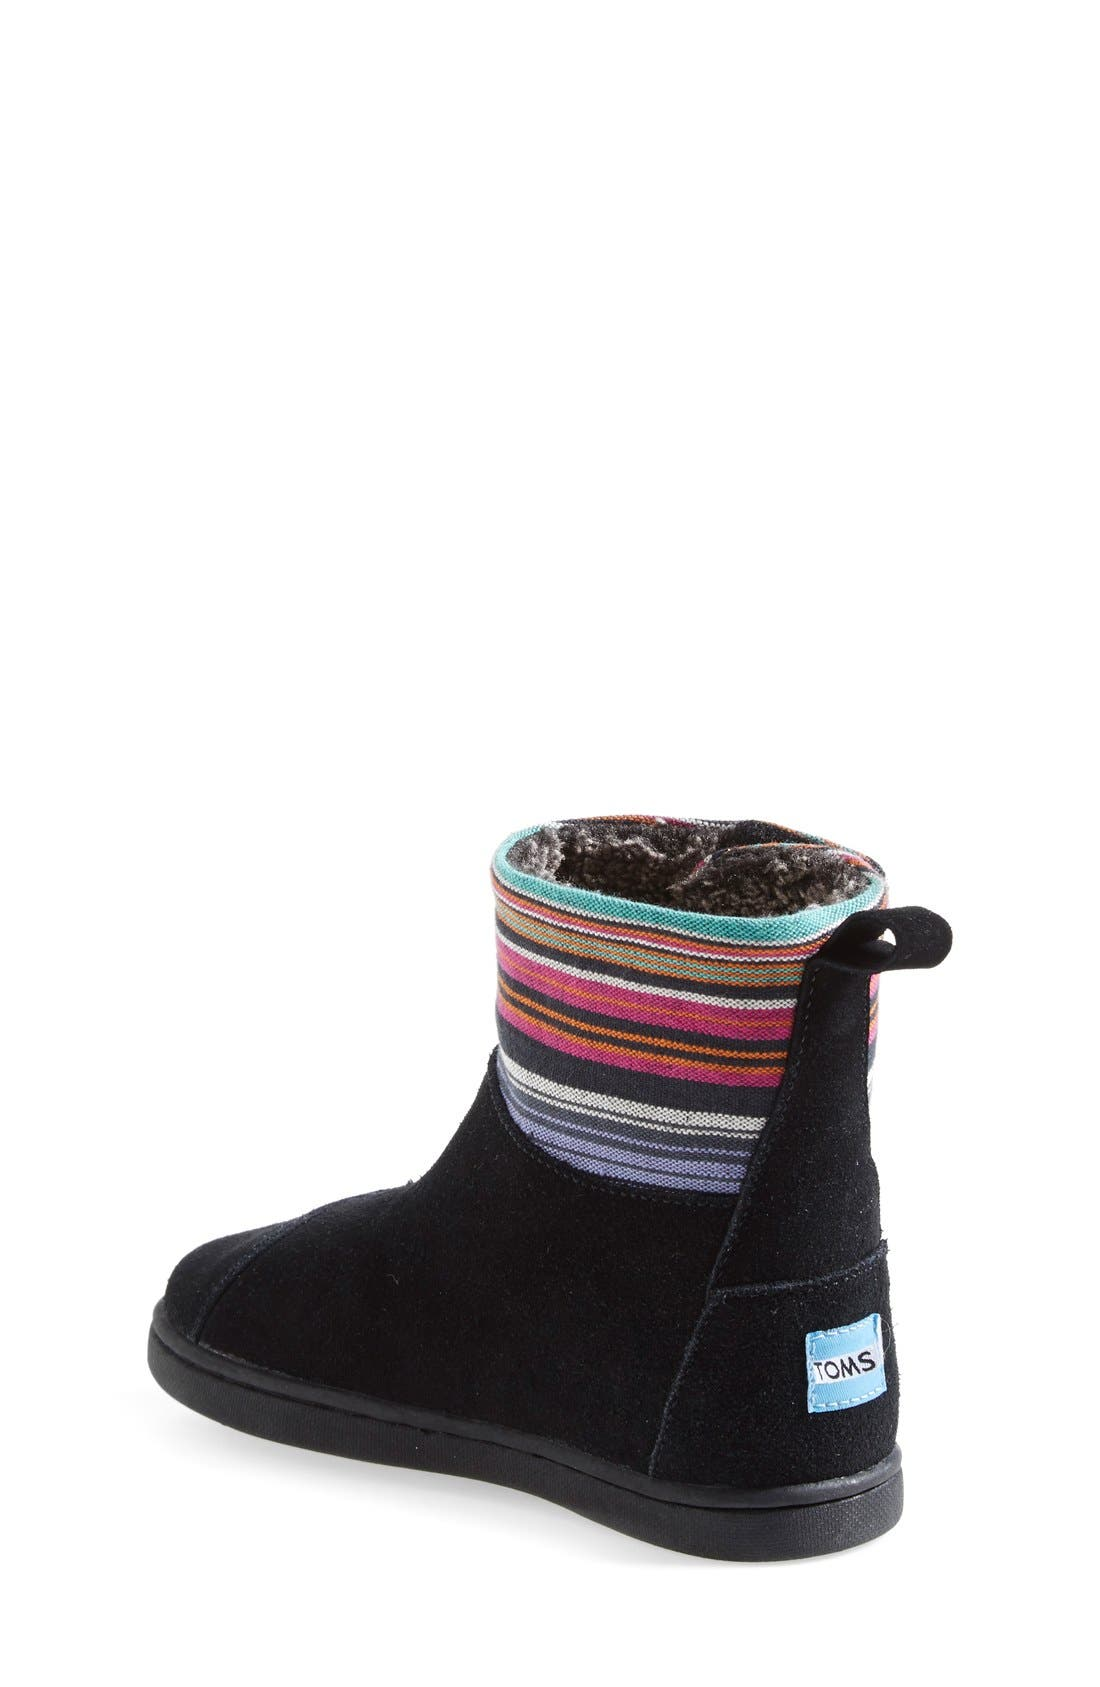 Alternate Image 2  - TOMS 'Nepal - Tiny' Boot (Toddler)